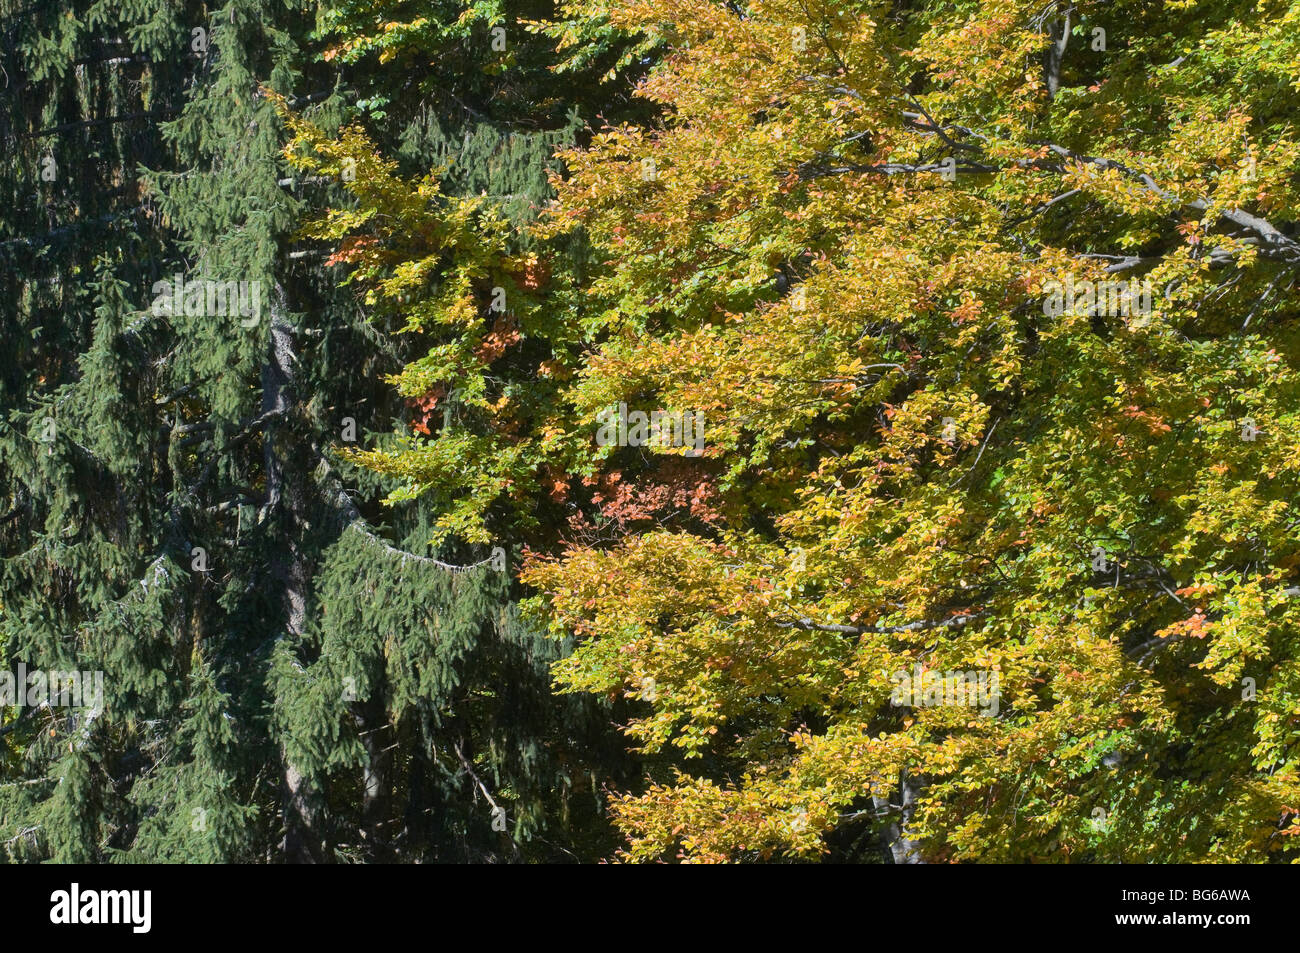 Germany, Bayerischerwald, conifers and beeches in autumn - Stock Image